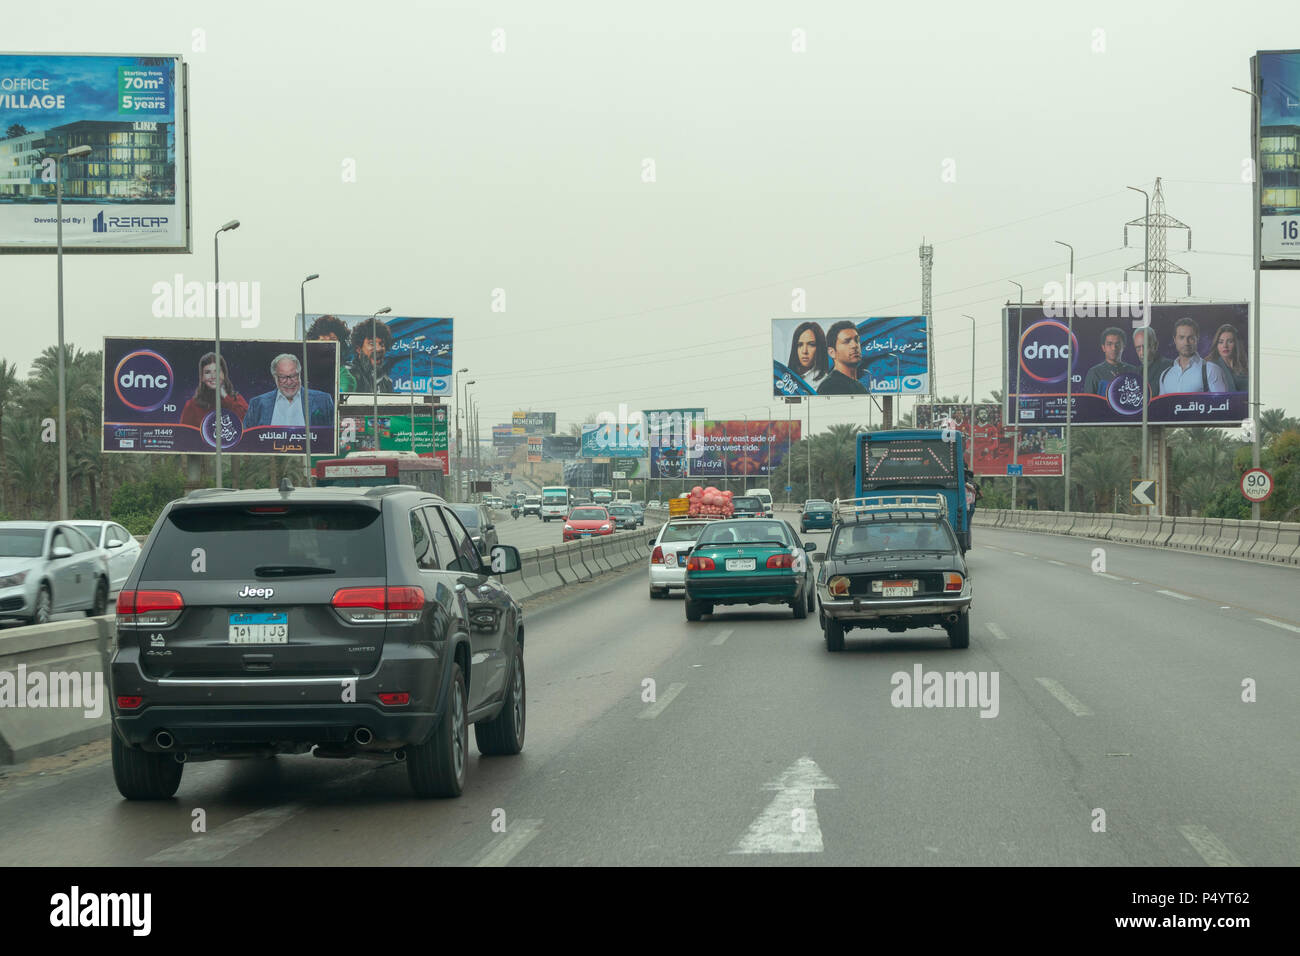 arterial road in Cairo, Egypt showing proliferation of billboards with advertising. - Stock Image